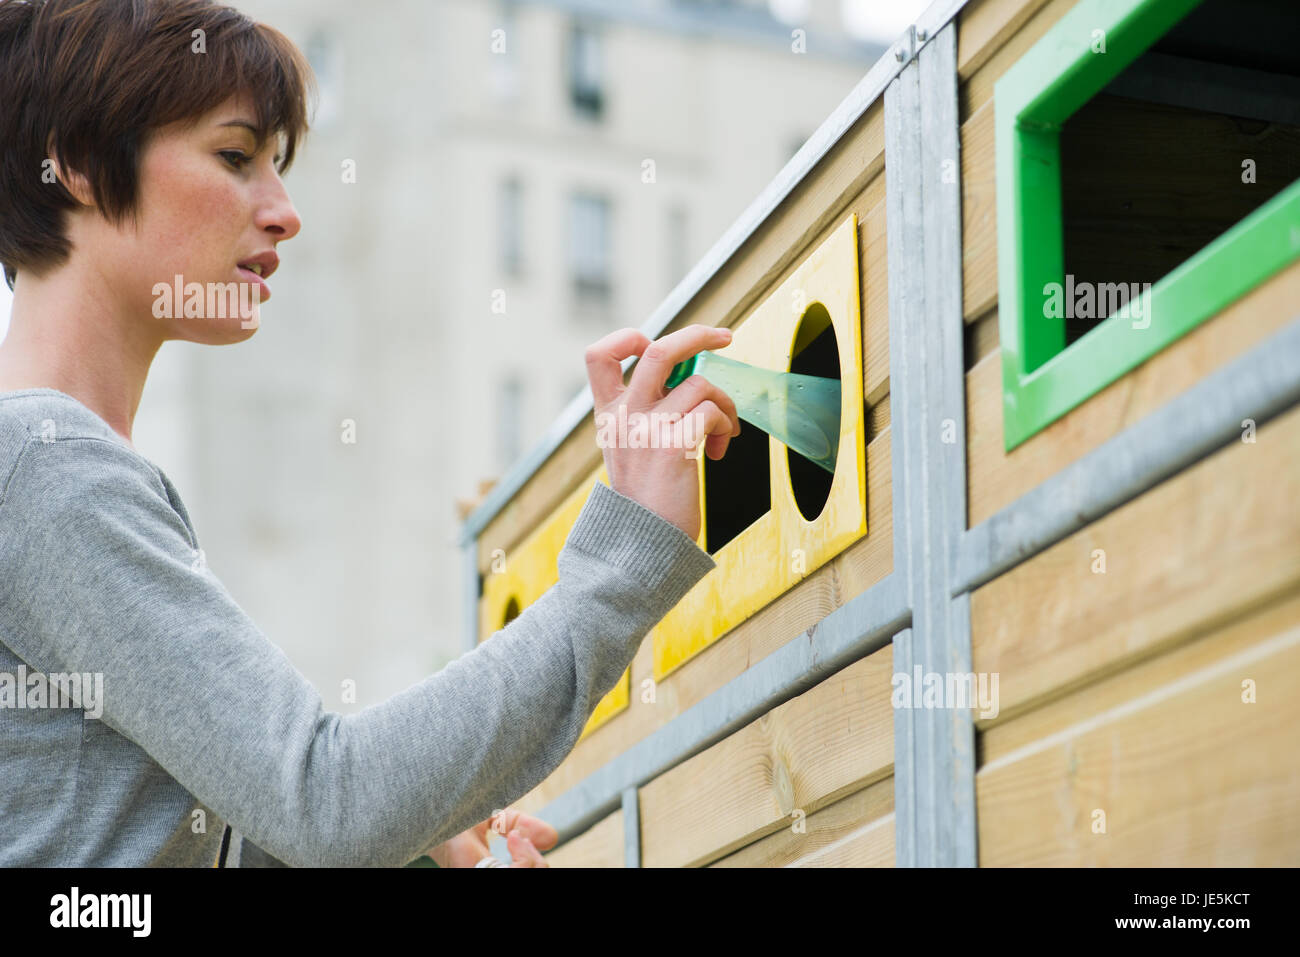 Woman placing plastic bottle in recycling bin - Stock Image